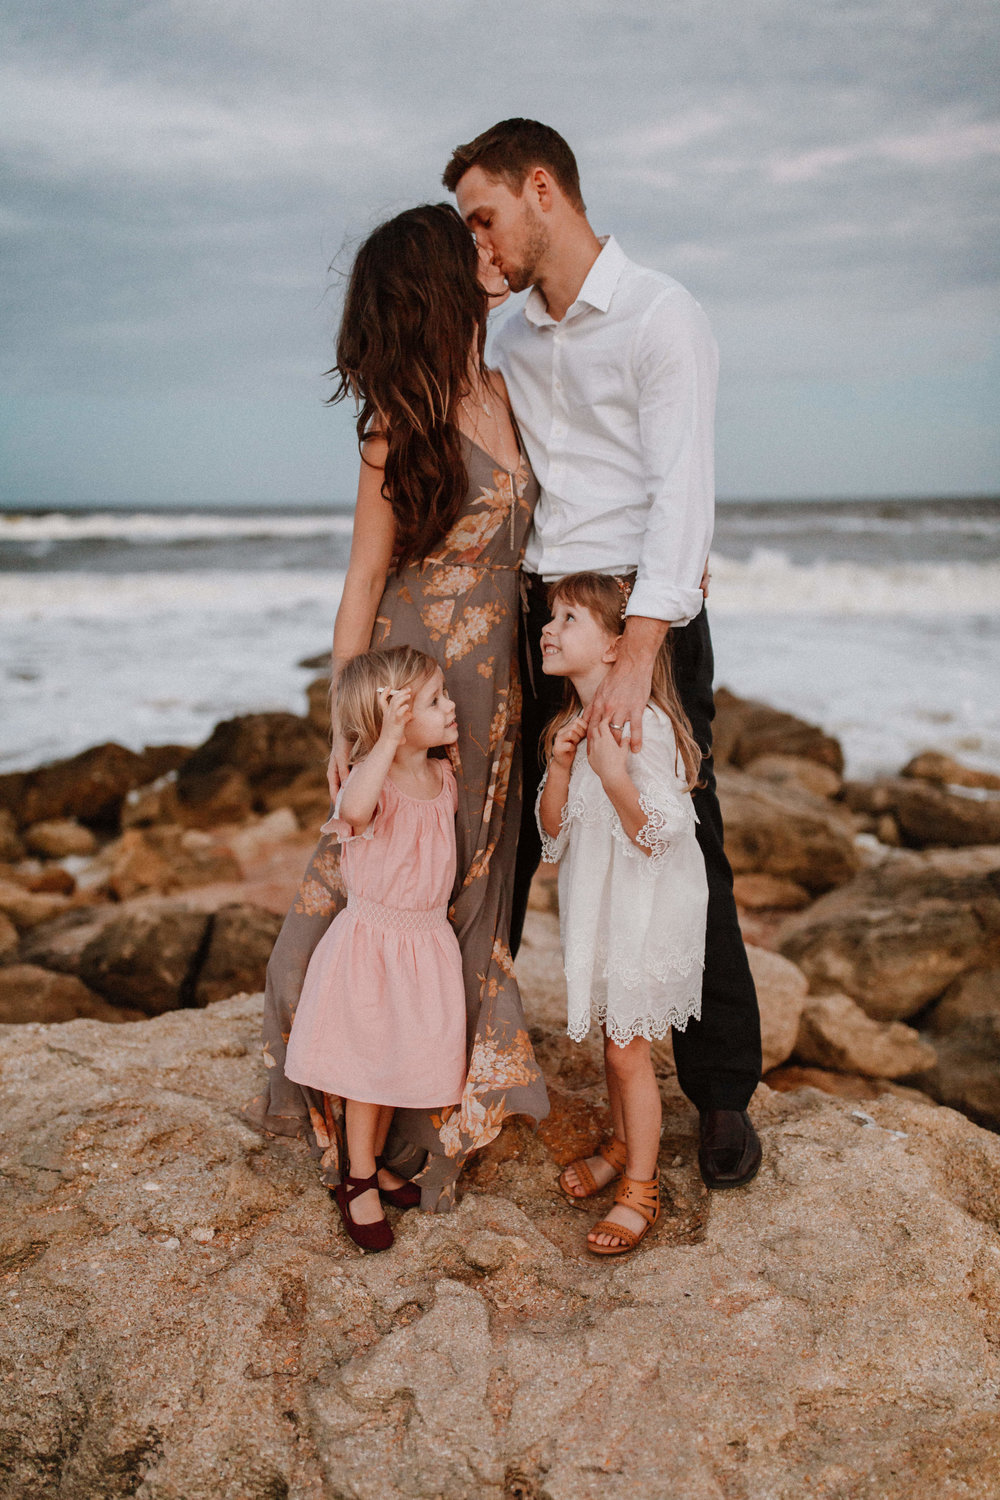 Boho Chic Family Lifestyle Photos at Washington Oaks Gardens State Park by ShainaDeCiryan.com 072.jpg